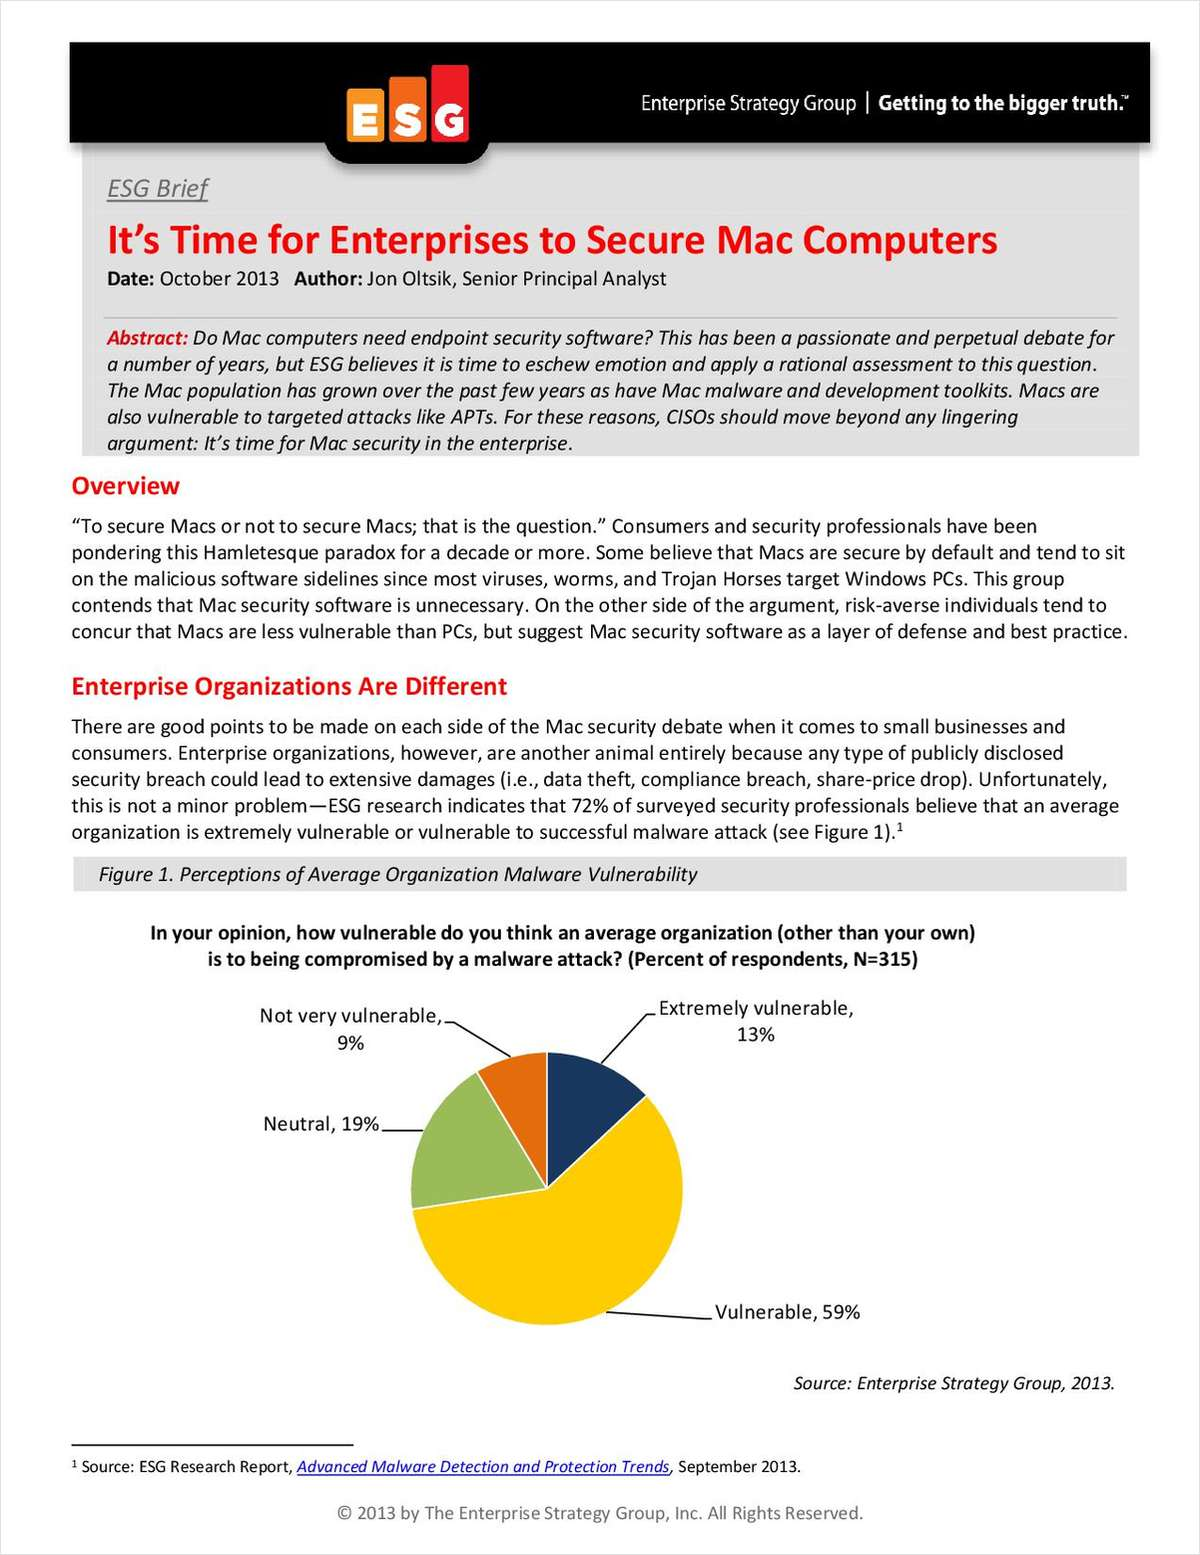 It's Time for Enterprises to Secure Mac Computers